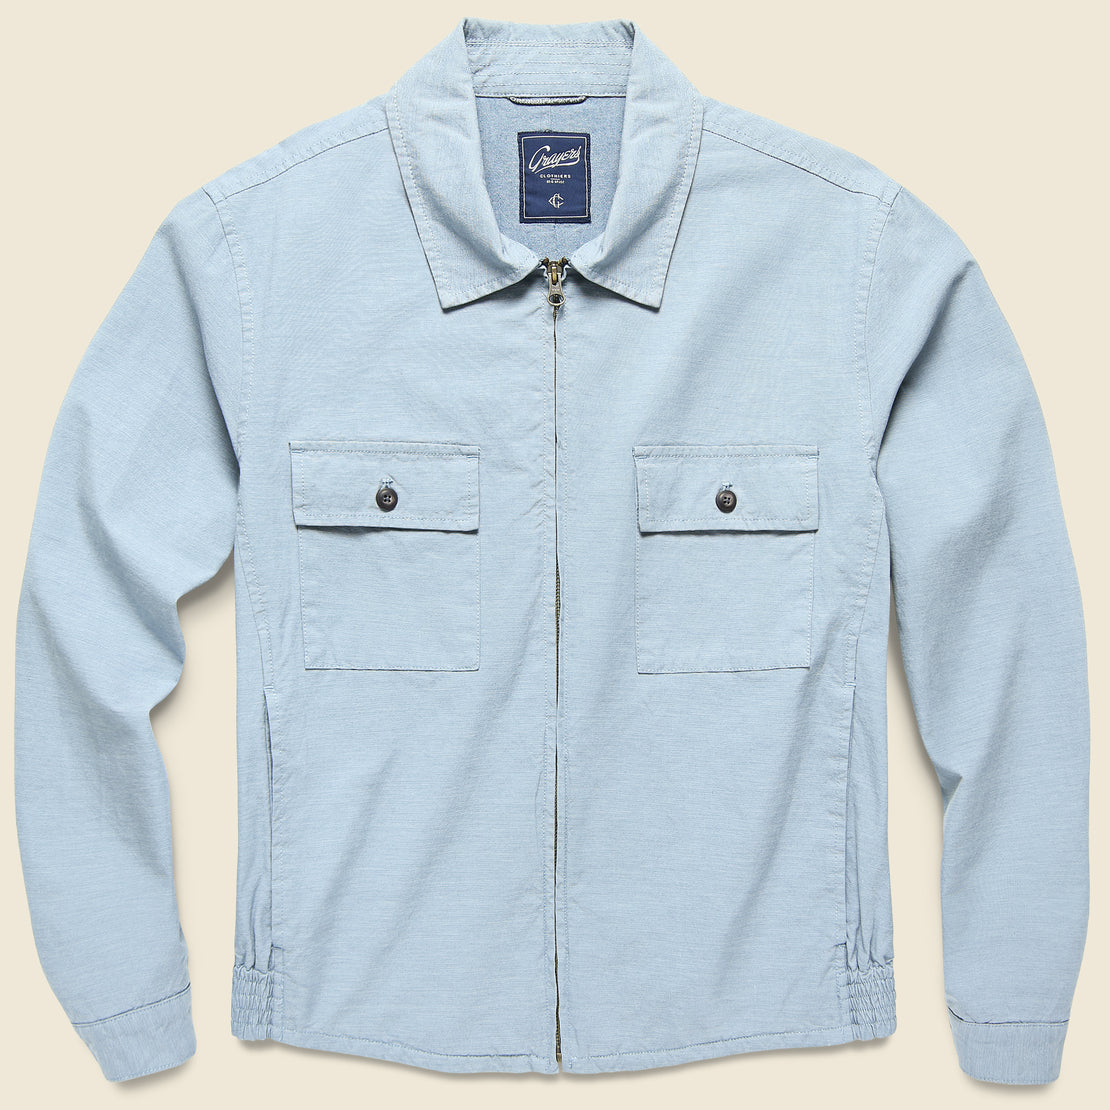 Grayers Randolph Windbreaker Jacket - China Blue